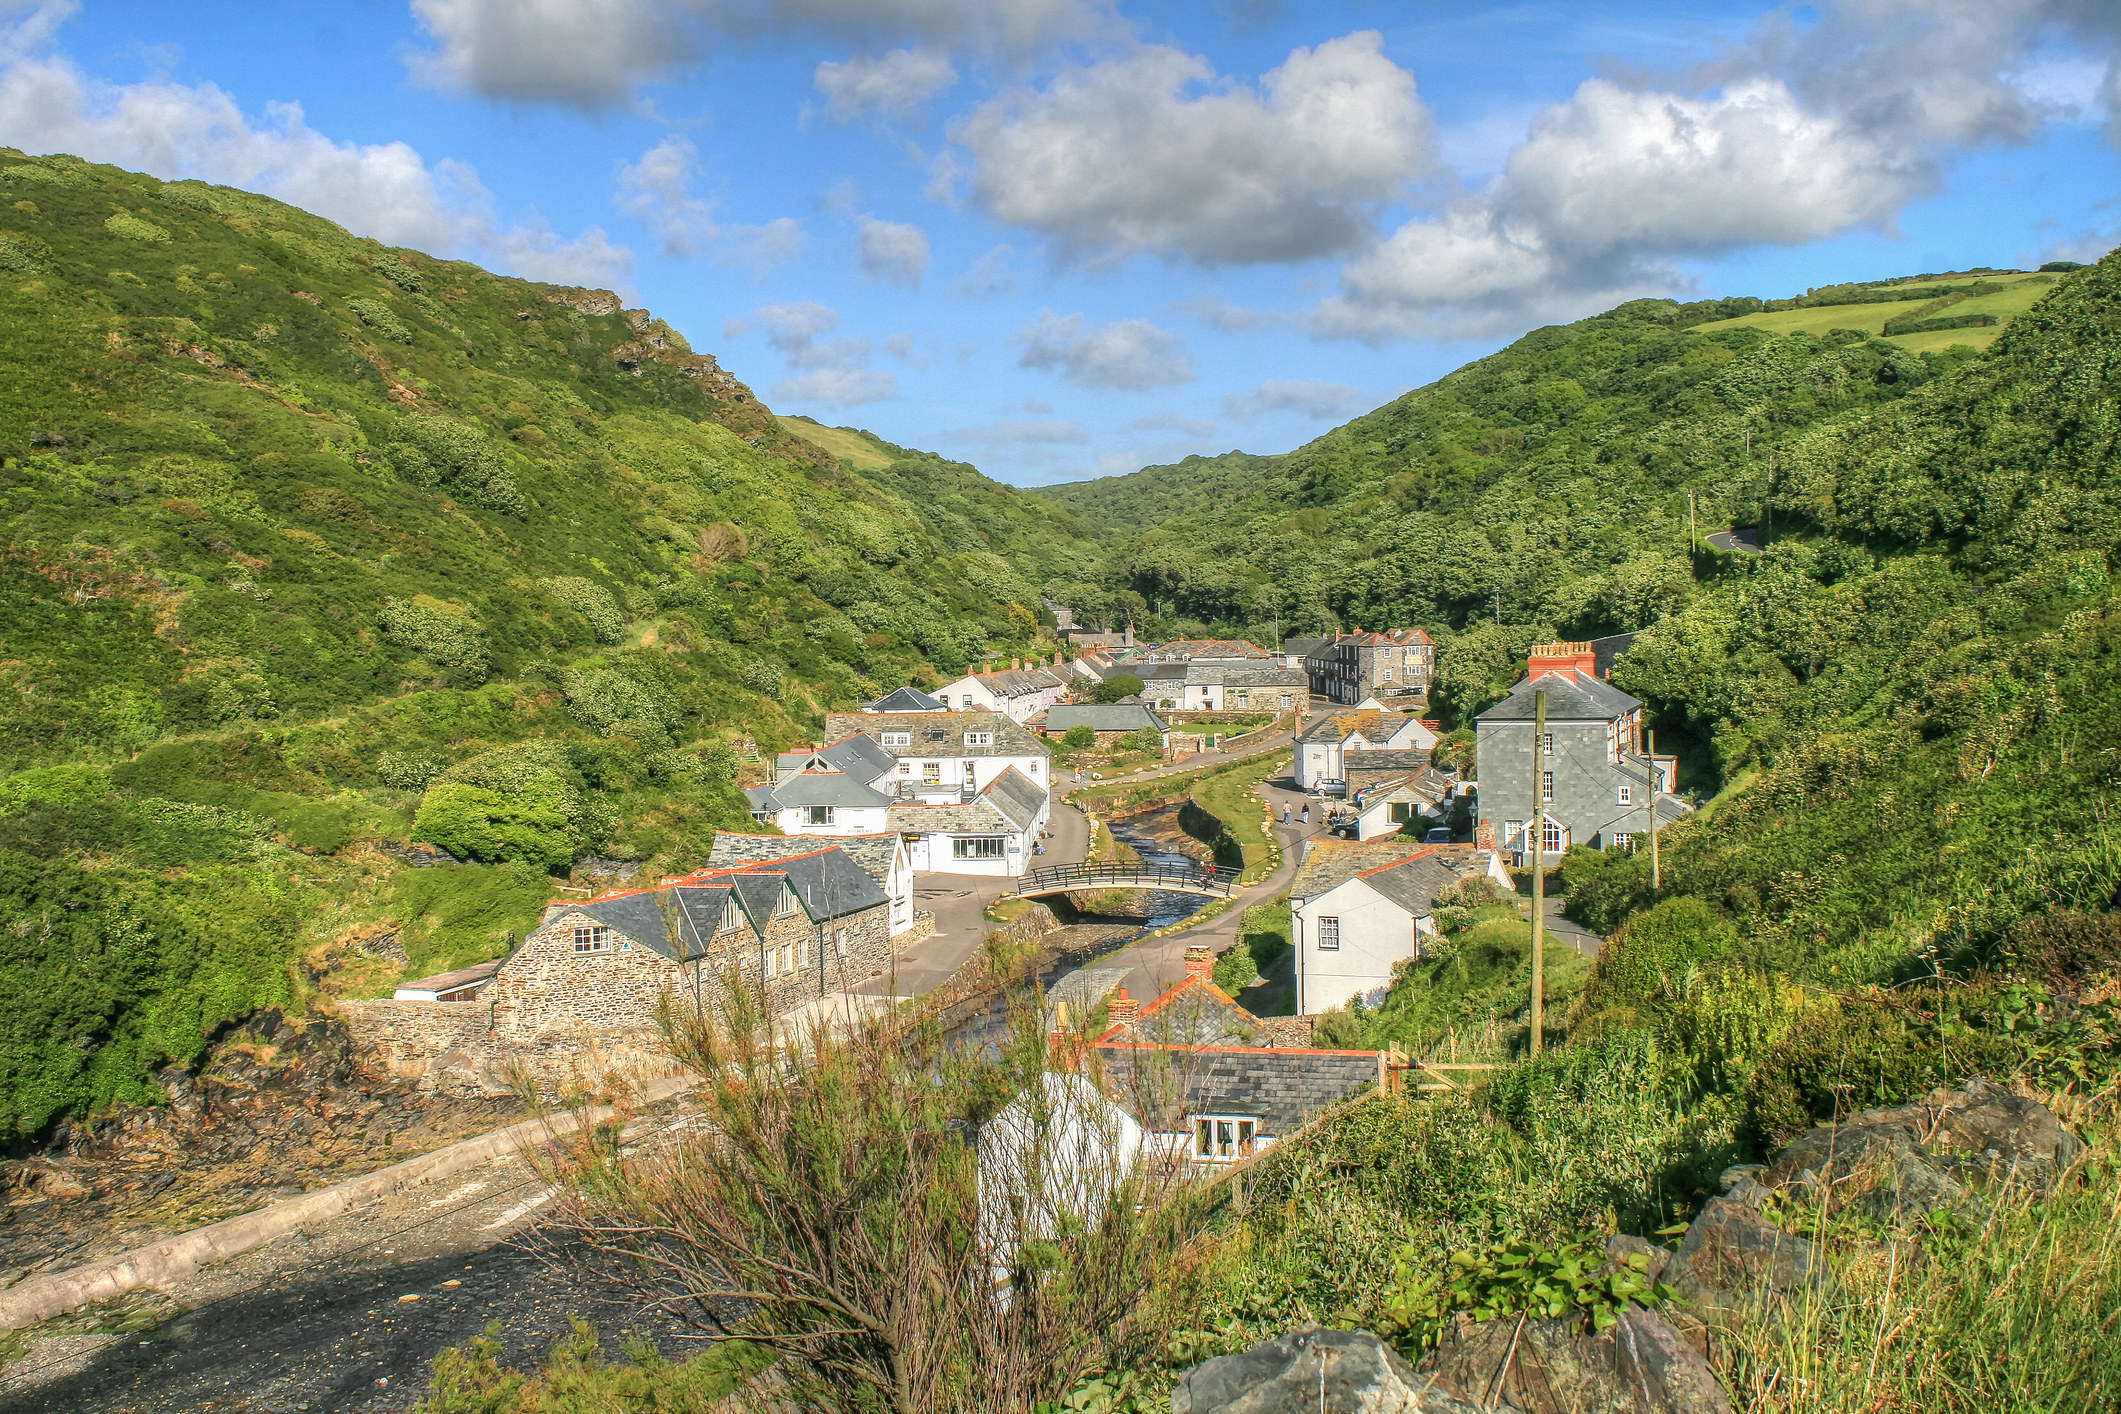 A view from above over the stone houses of the village as it sits in a valley with a river running through